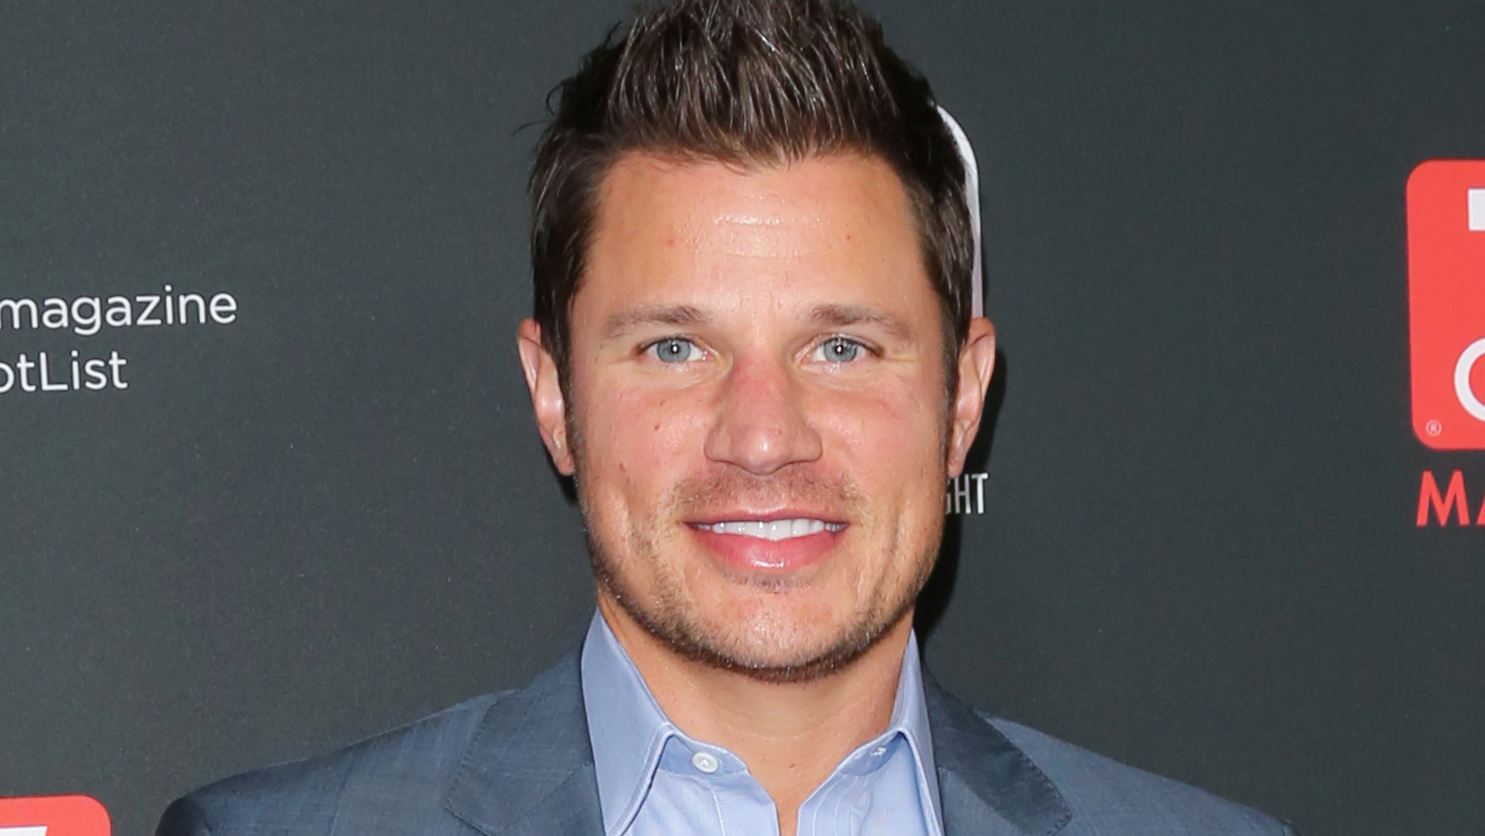 PHOTO: Nick Lachey attends TV Guide magazine's annual Hot List Party at The Emerson Theatre, Nov. 4, 2013, in Hollywood, Calif.